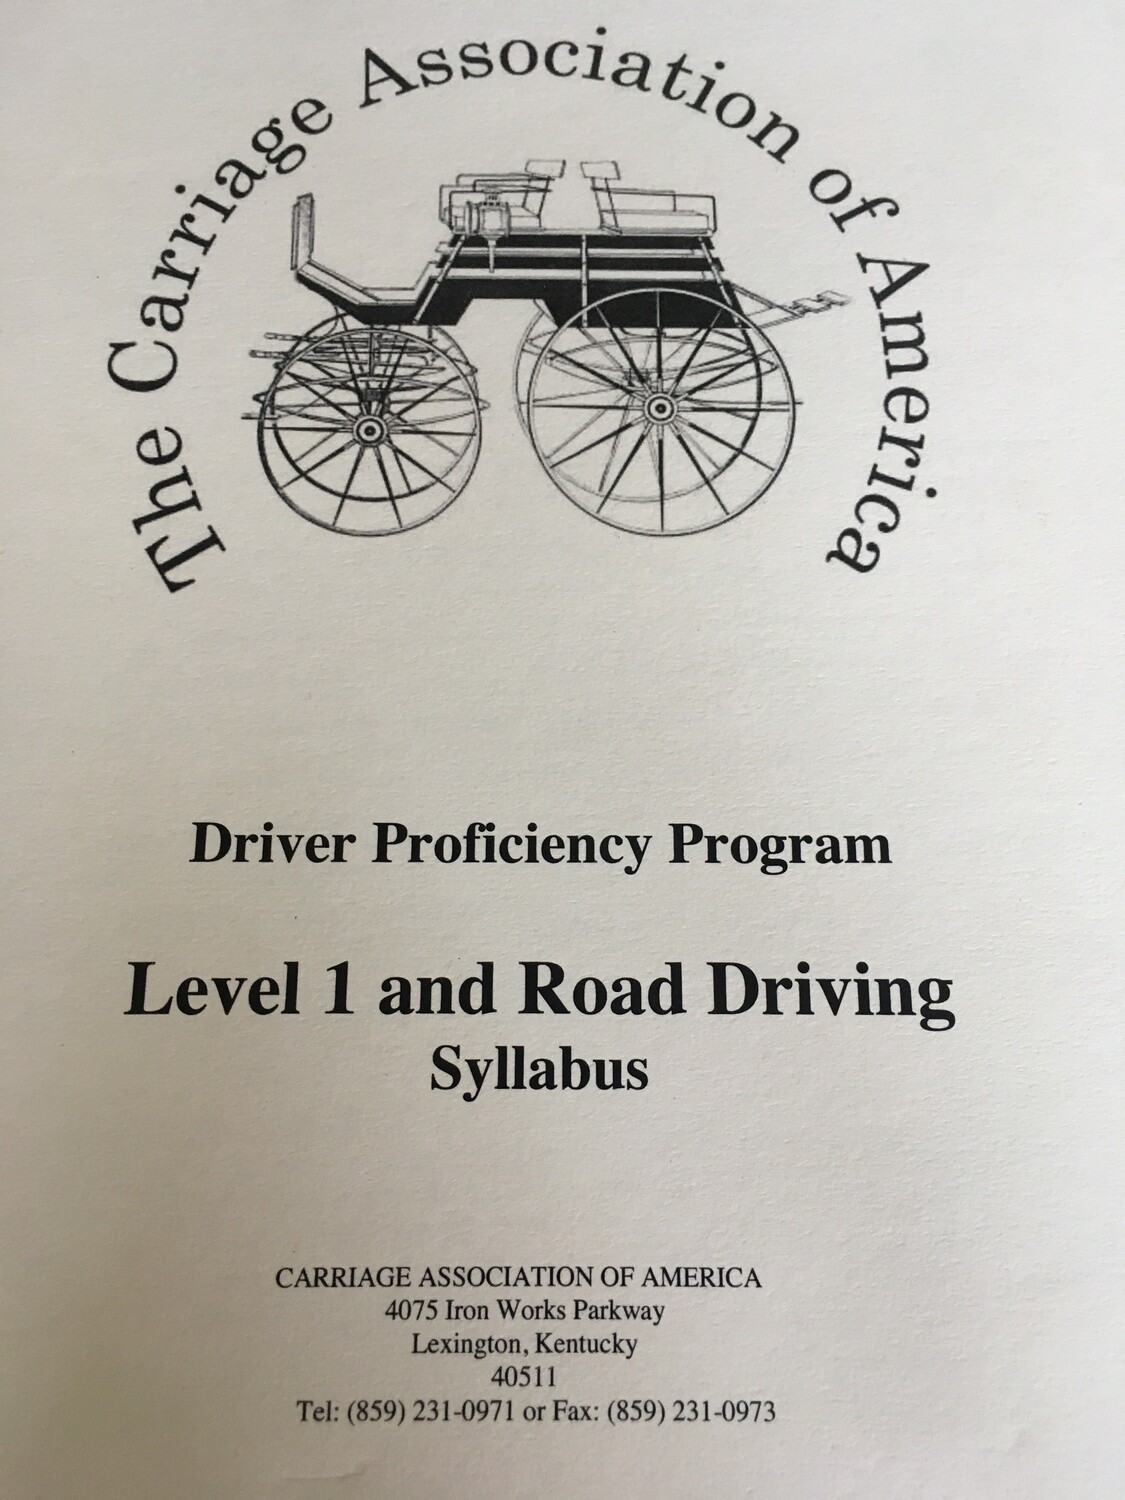 CAA Driver Proficiency Program - Level 1 and Road Driving